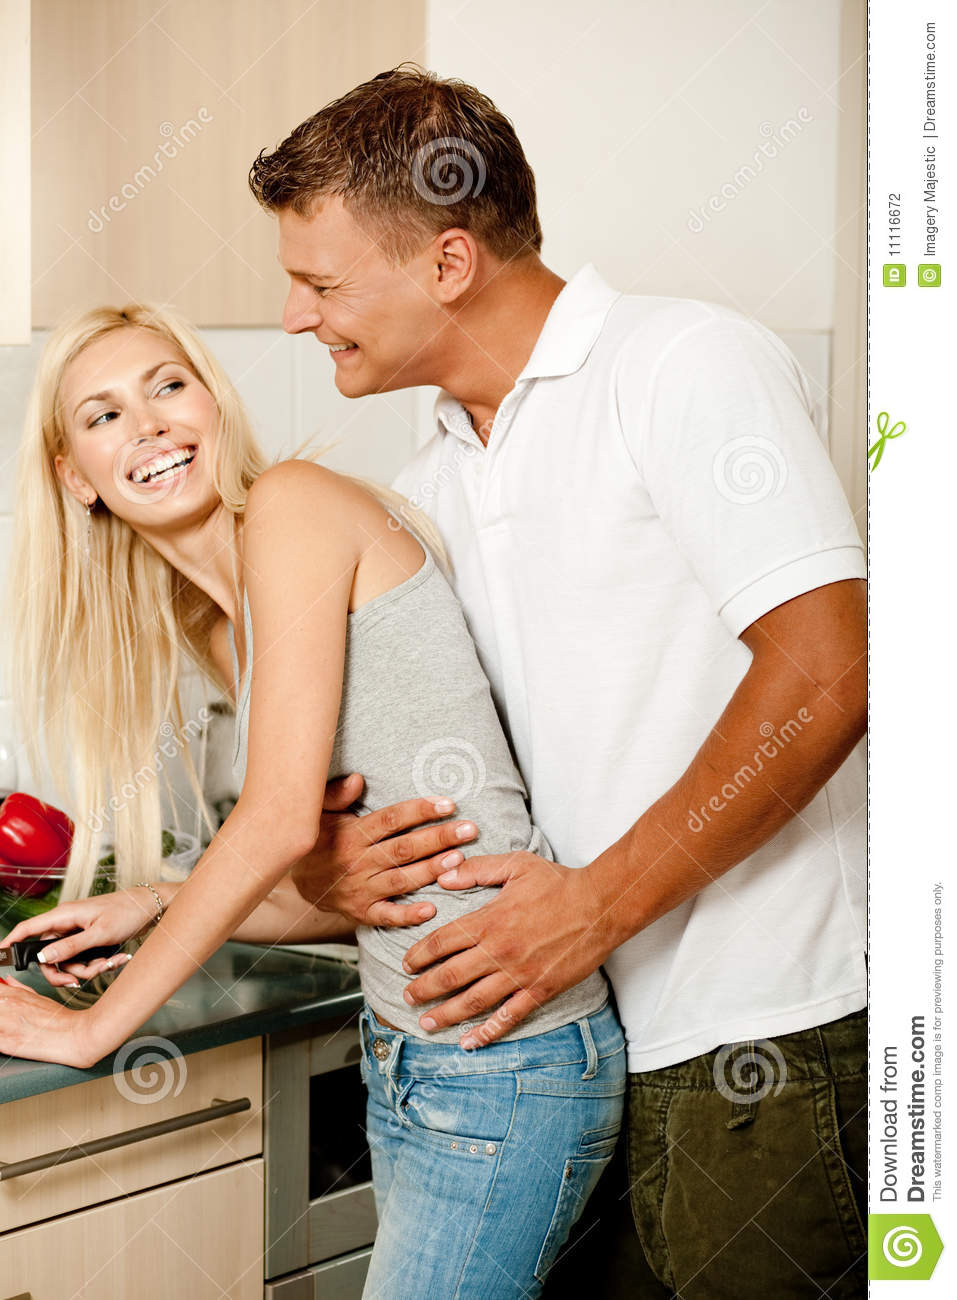 10 Kitchen And Home Decor Items Every 20 Something Needs: Love In The Kitchen Stock Photography